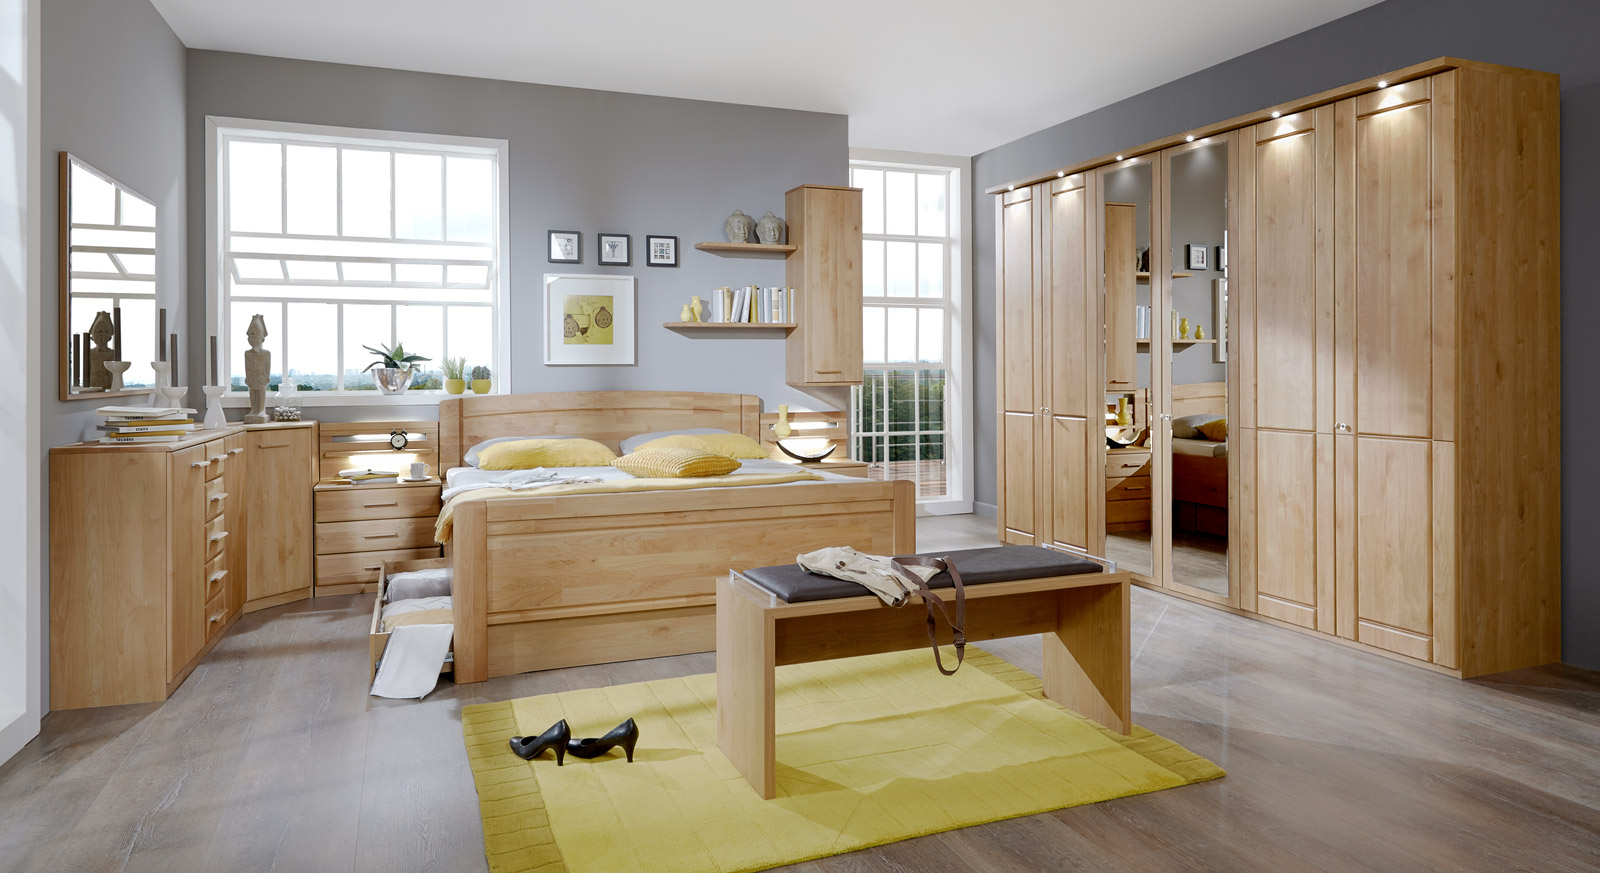 kombi kommode aus holz f r schlafzimmer trikomo. Black Bedroom Furniture Sets. Home Design Ideas